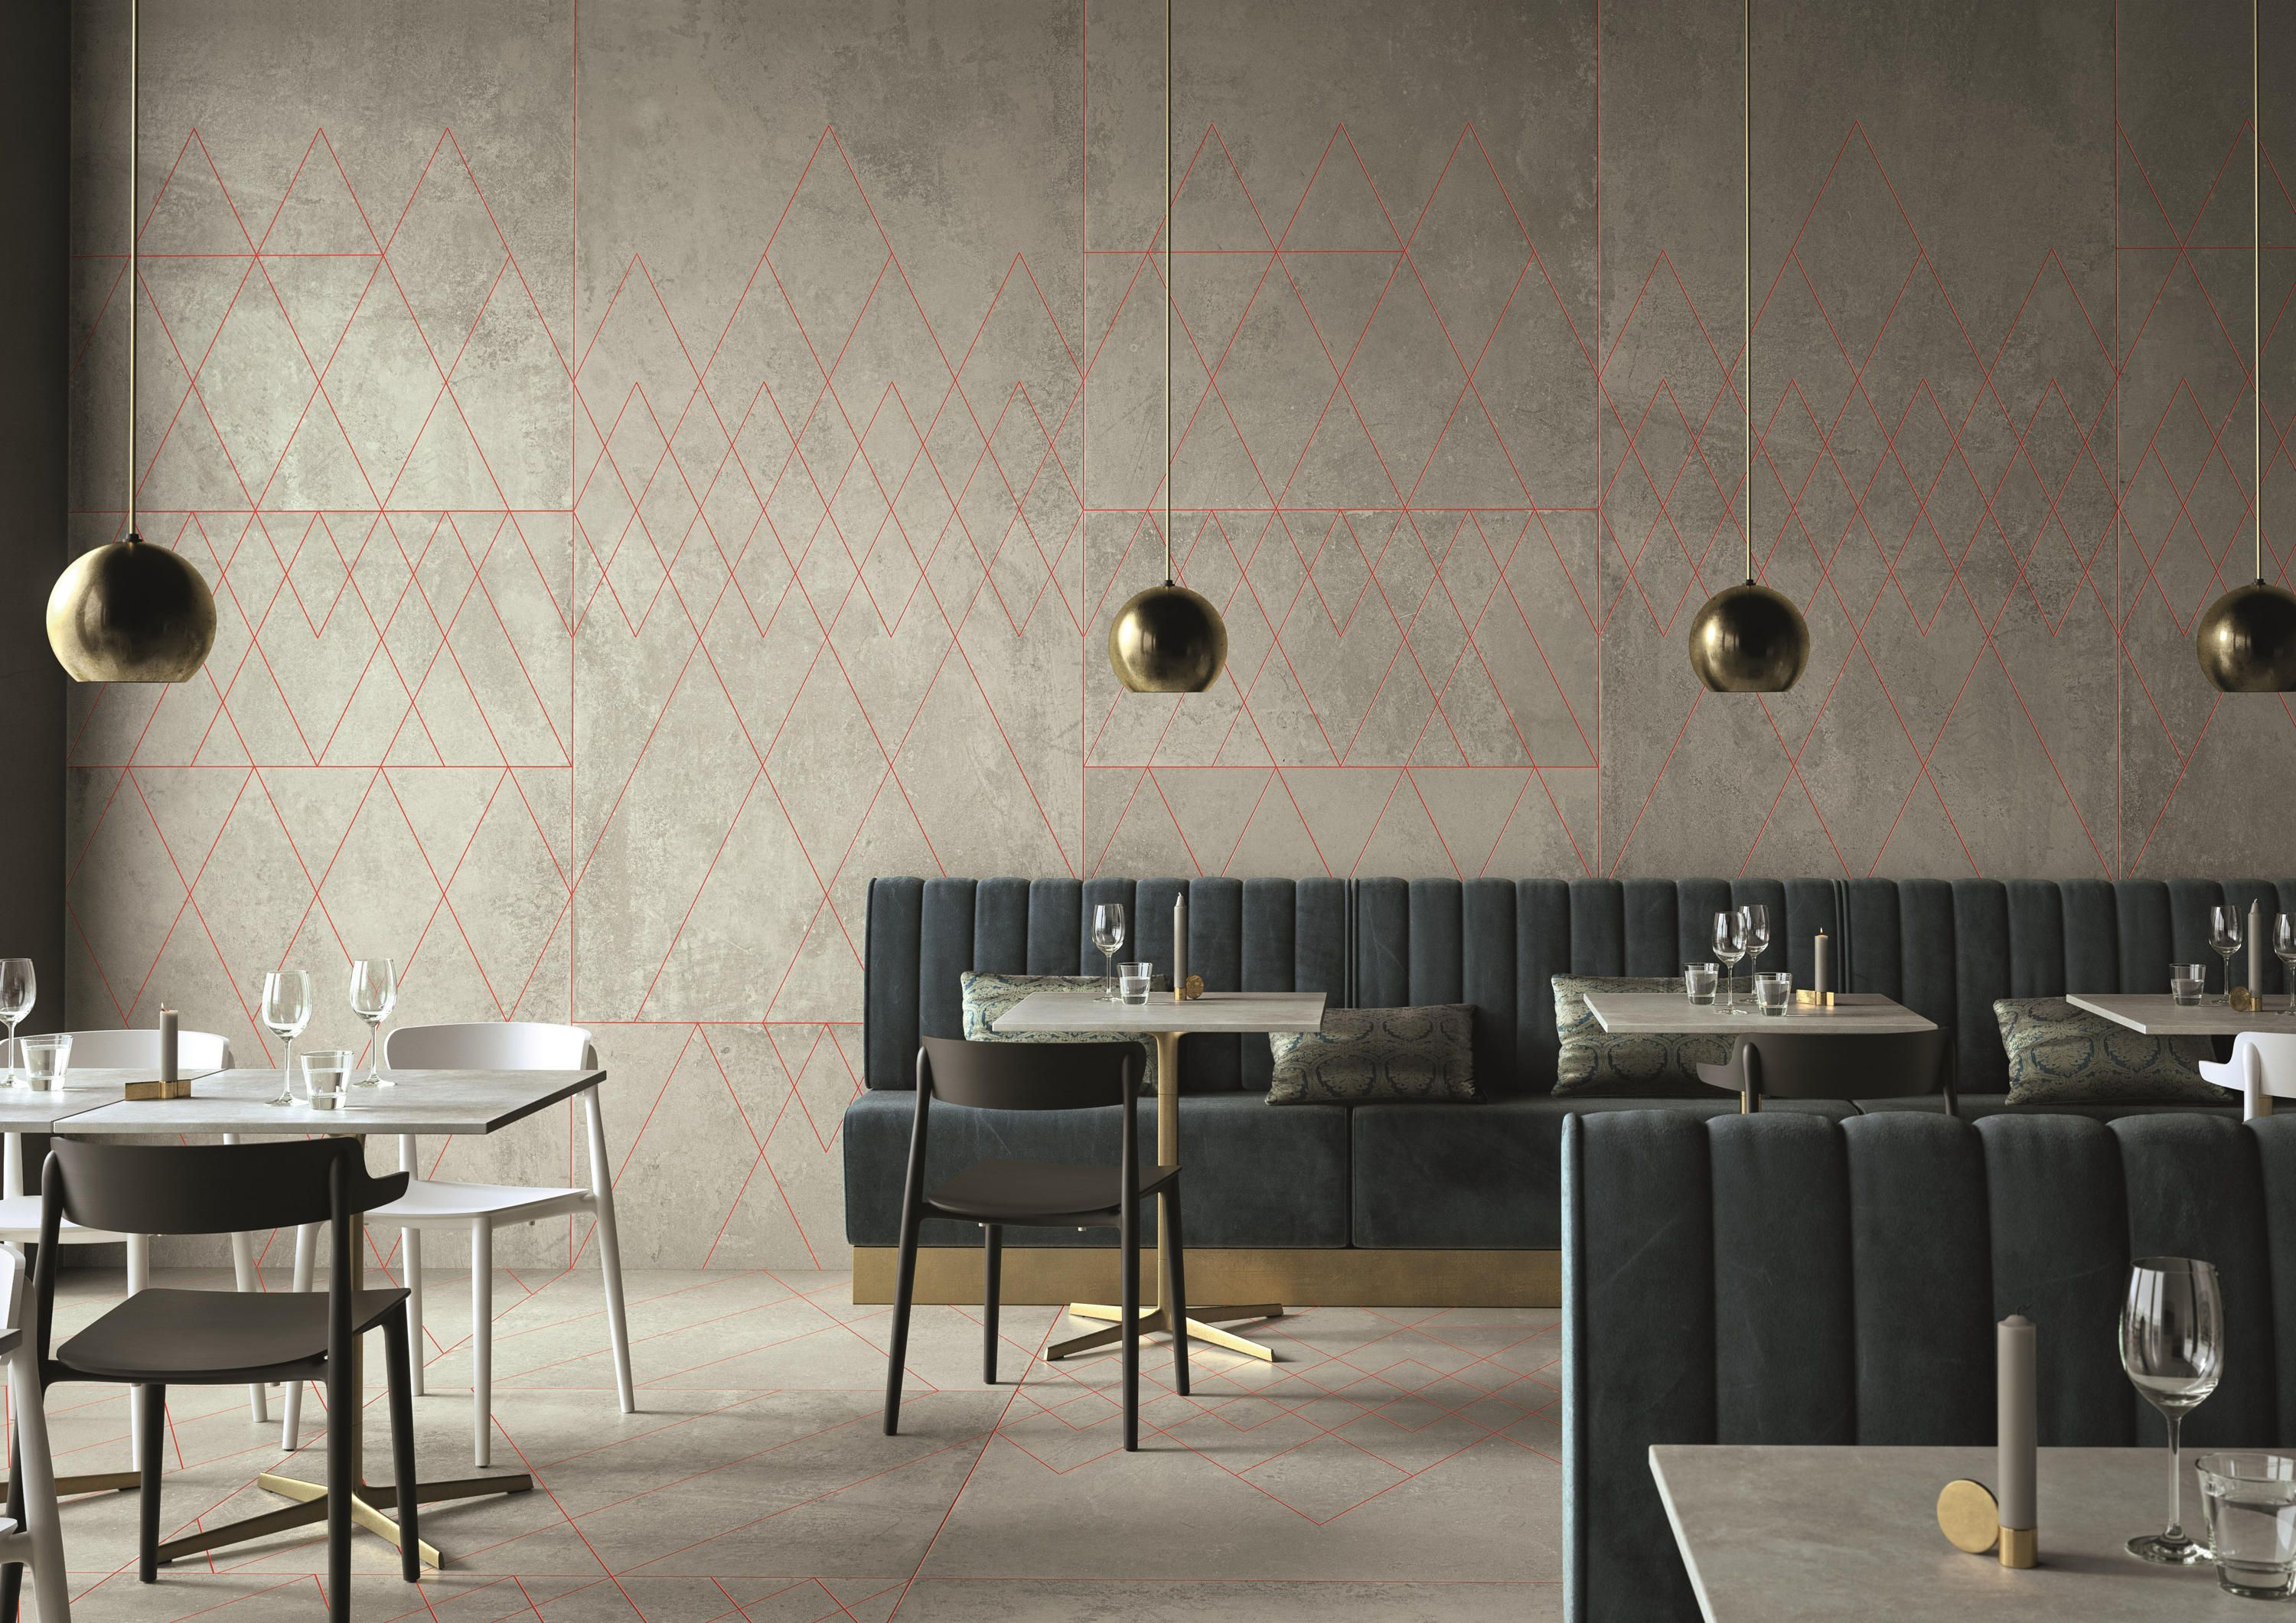 Matrice trama 2 d1 designer ceramic tiles from cedit by florim matrice trama 2 d1 ceramic tiles from cedit by florim architonic ppazfo